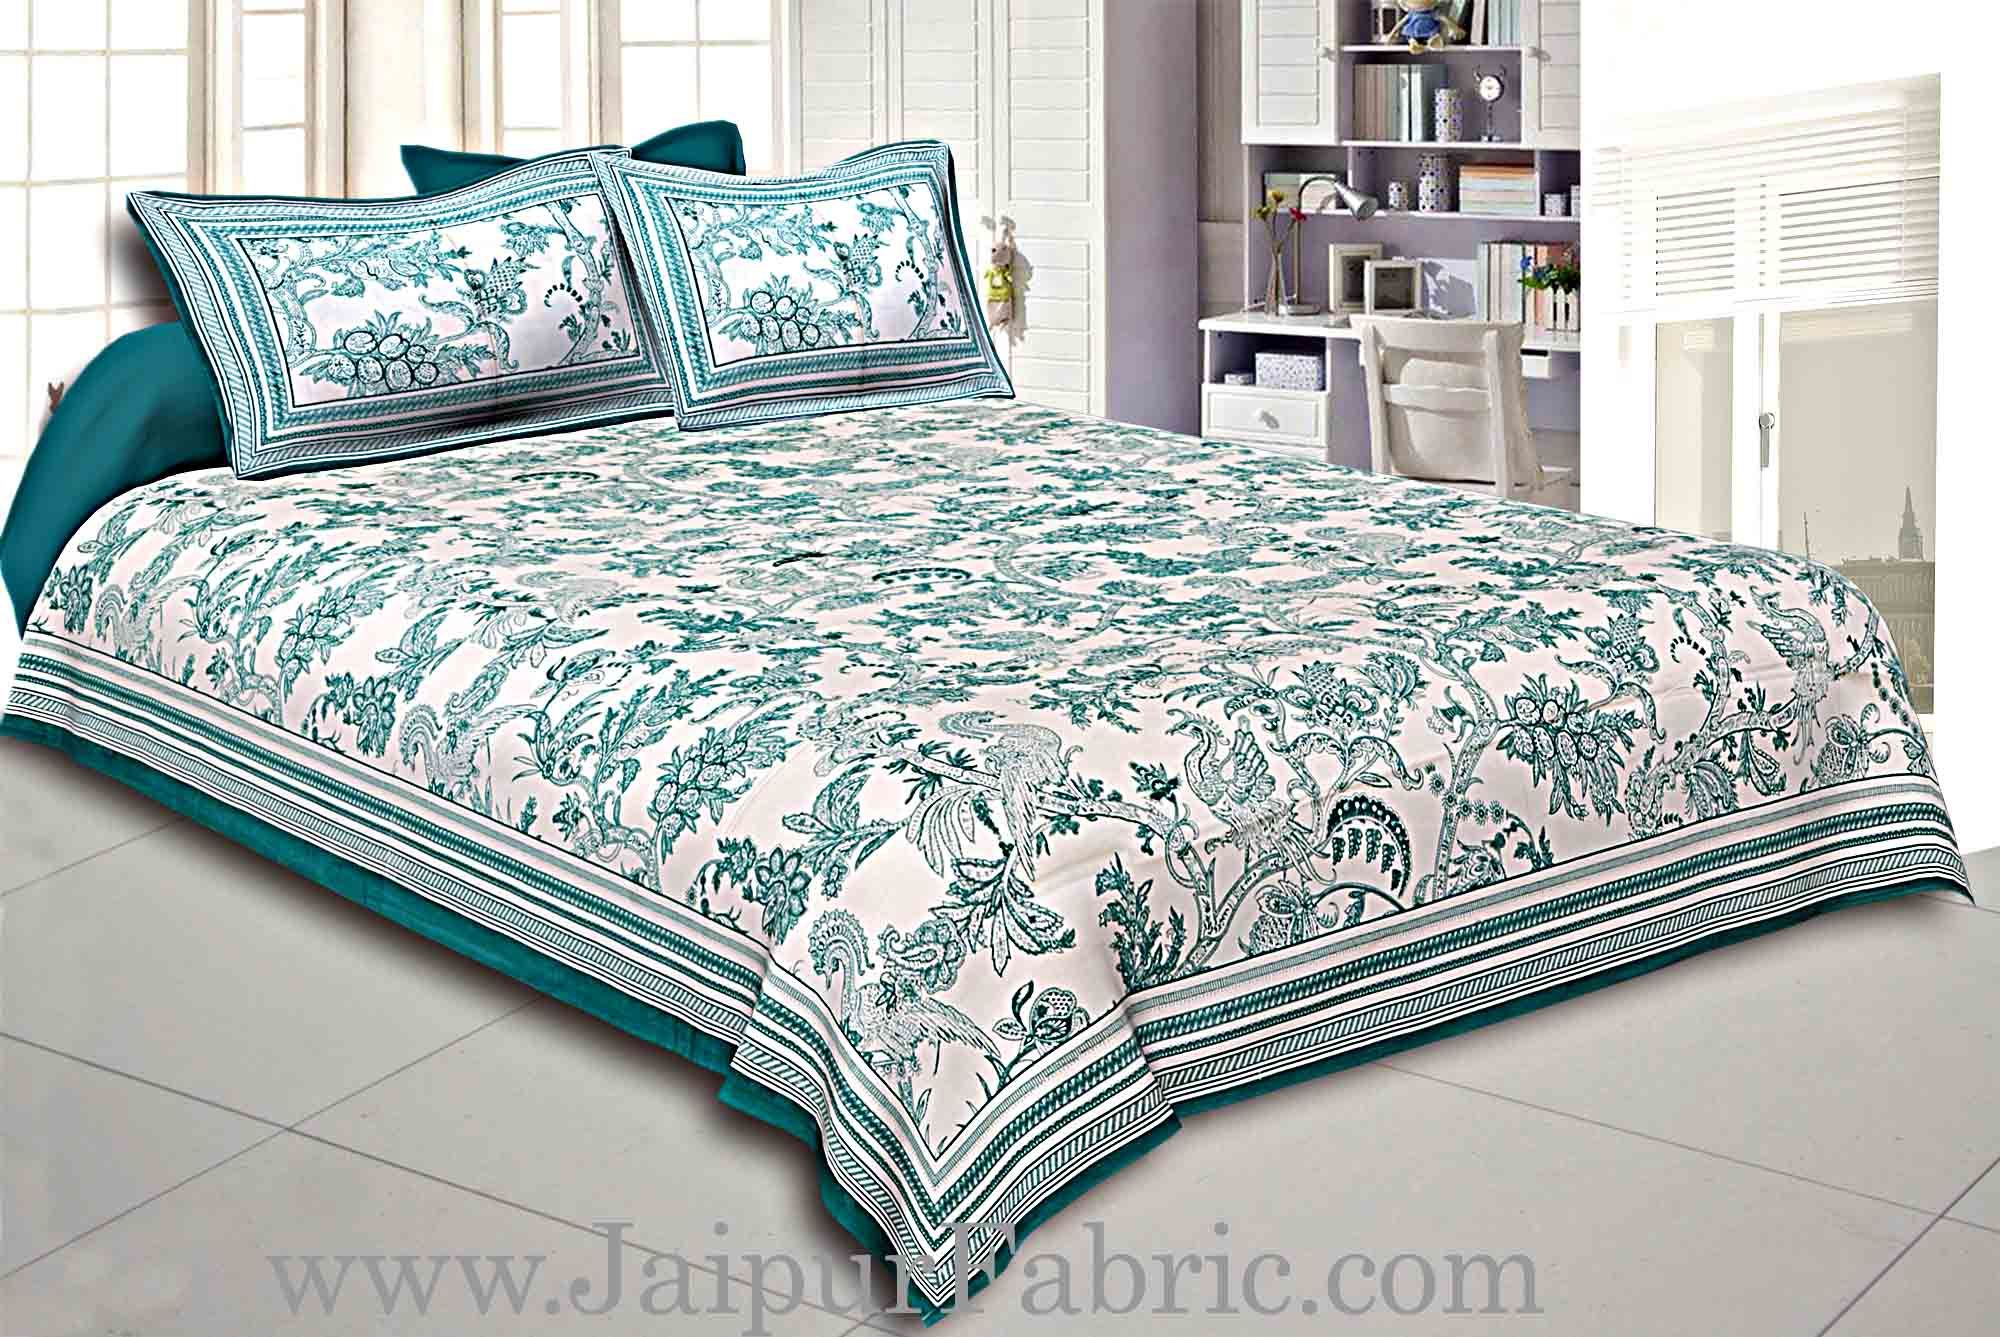 Green Border Cream Base Leaf And Floral Cotton Satin Hand Block Double Bedsheet